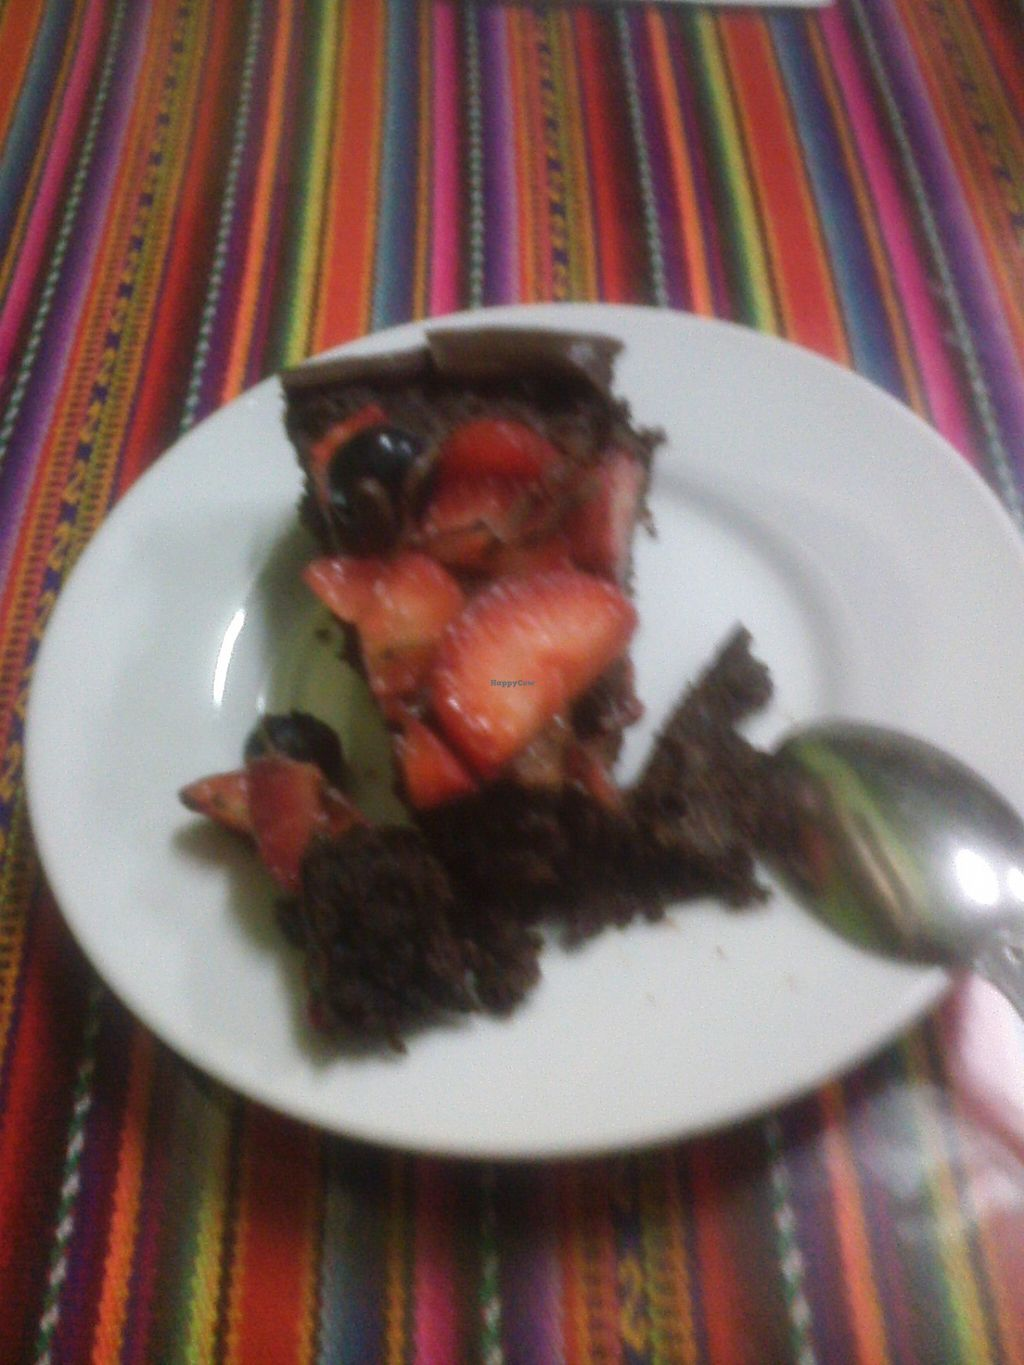 "Photo of Sinfonia Vegana  by <a href=""/members/profile/Patapompon"">Patapompon</a> <br/>Chocolate pie from the Sinfonía Vegana (restaurant in Lima) <br/> March 14, 2016  - <a href='/contact/abuse/image/70859/140016'>Report</a>"